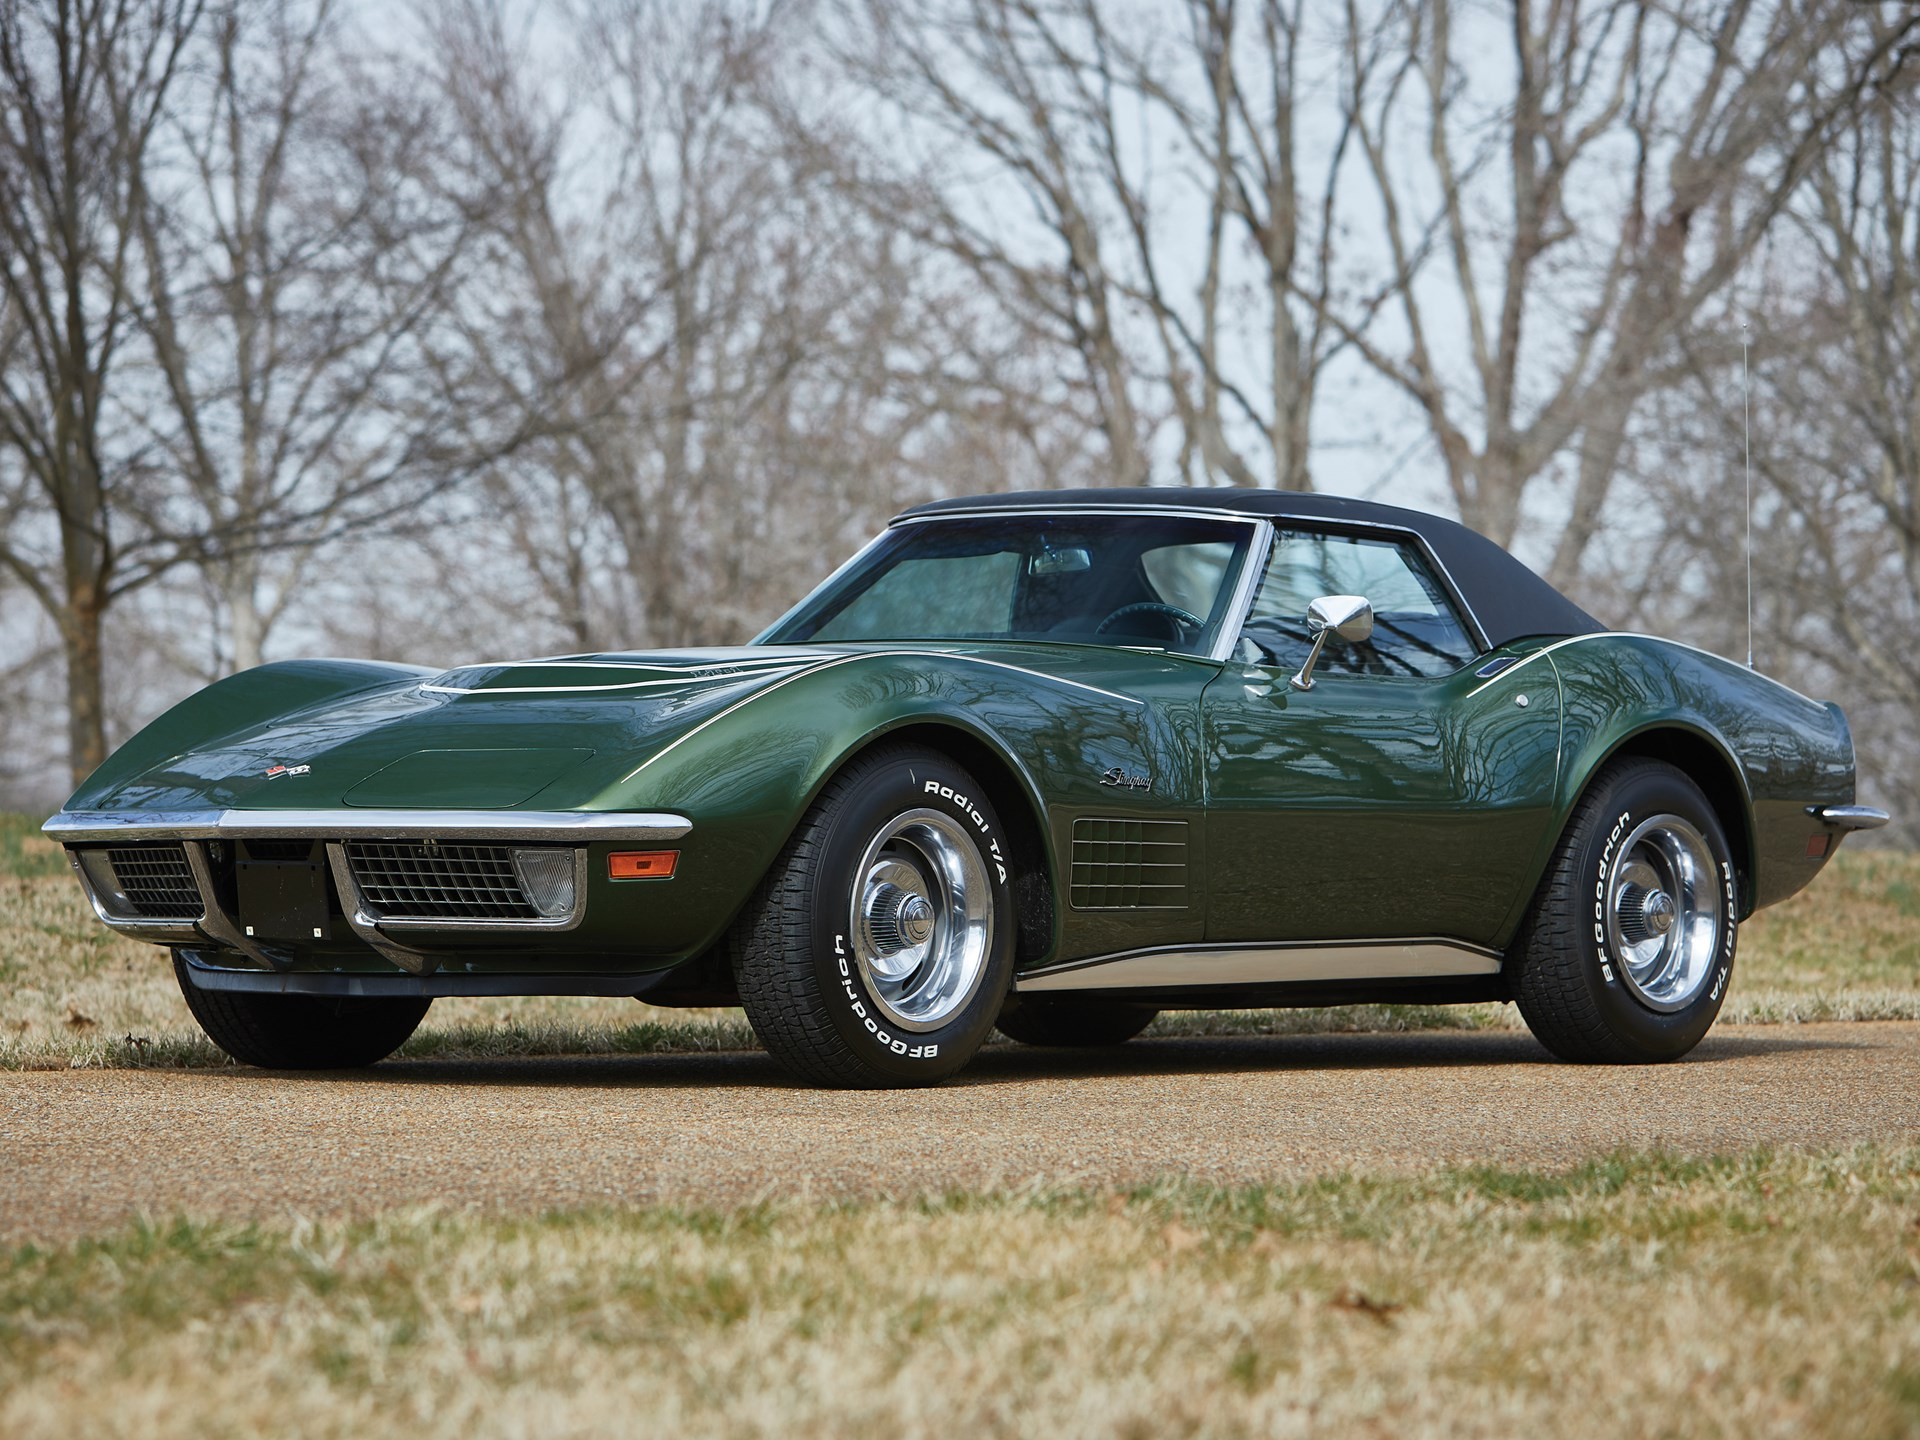 1970 Chevrolet Corvette Stingray Lt1 Convertible